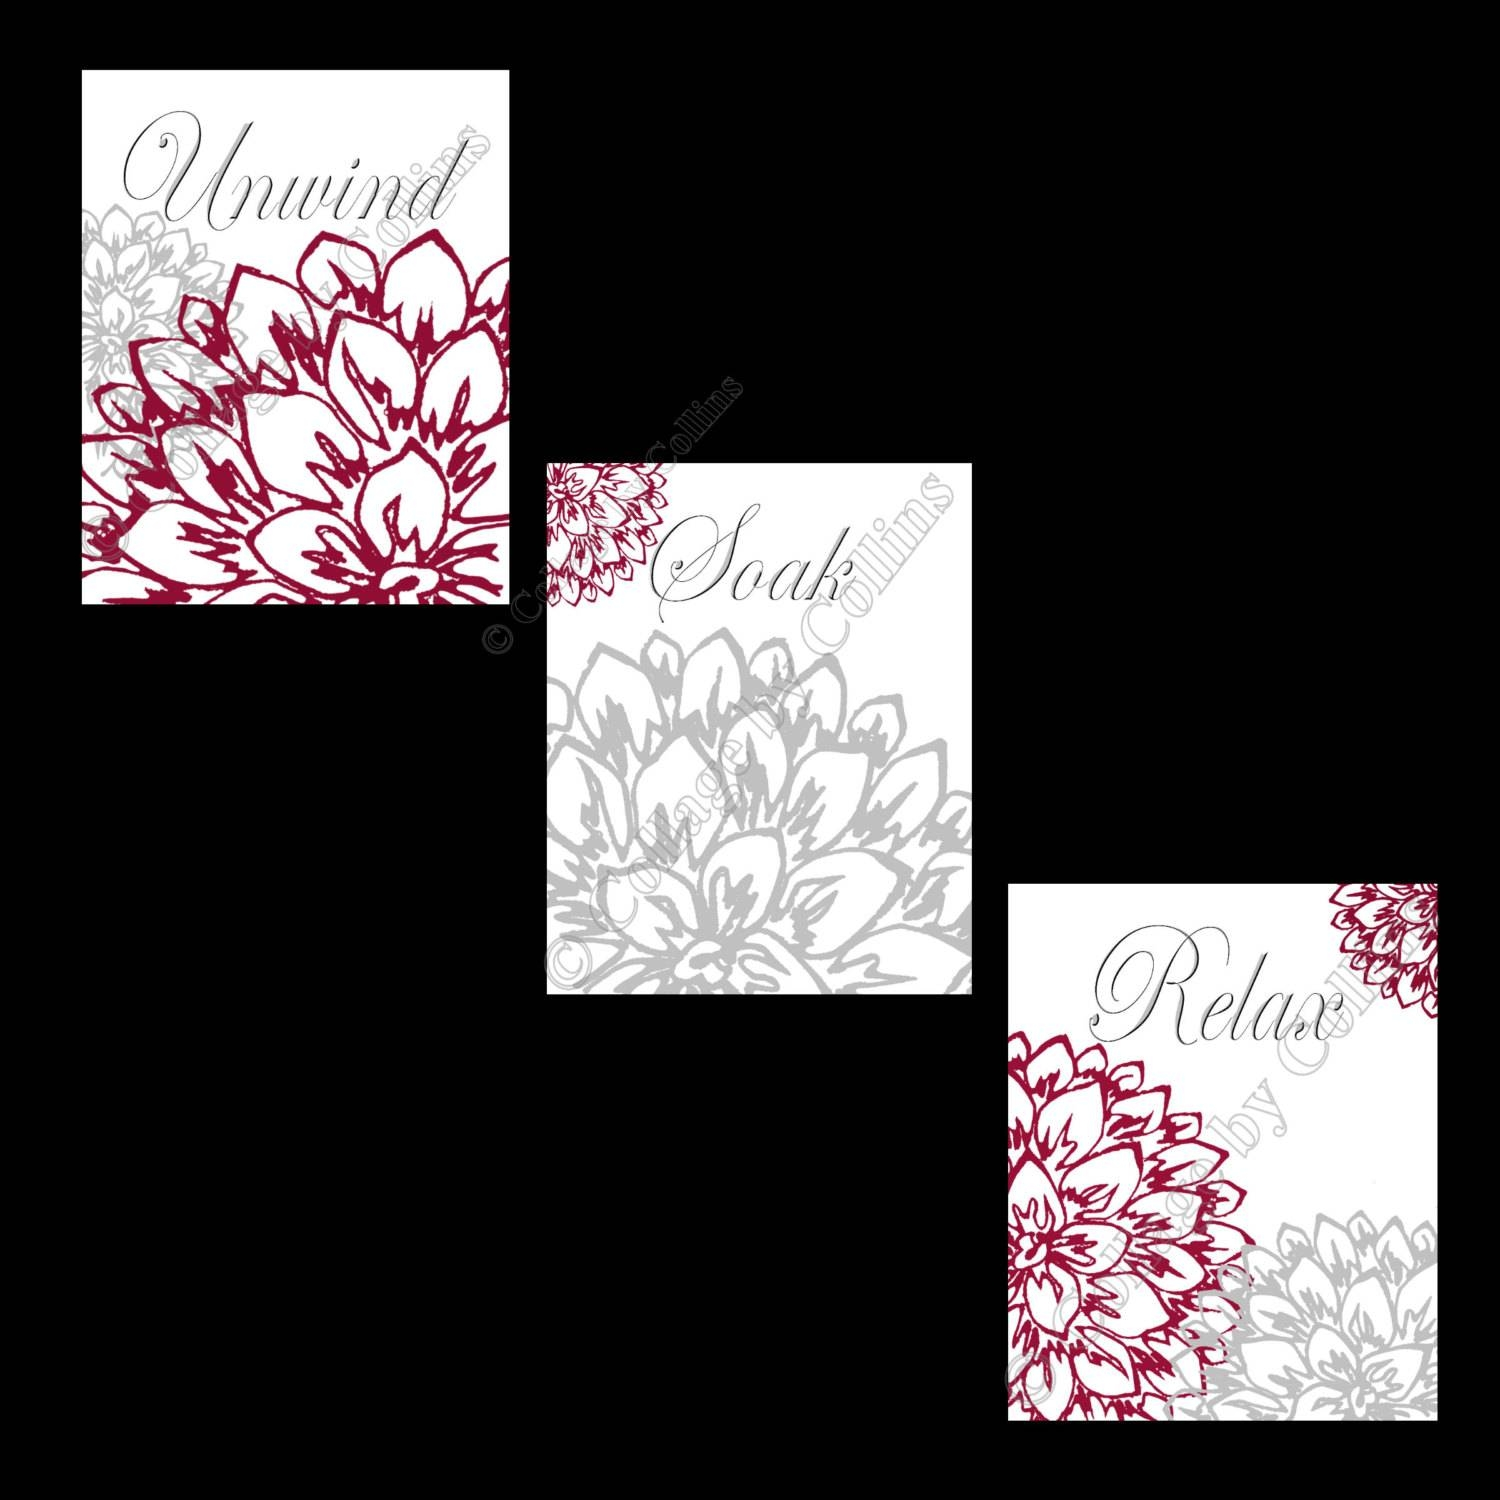 Floral Flower Gray And Burgundy Wall Art Prints Decor Bathroom Throughout Most Recently Released Burgundy Wall Art (View 10 of 15)